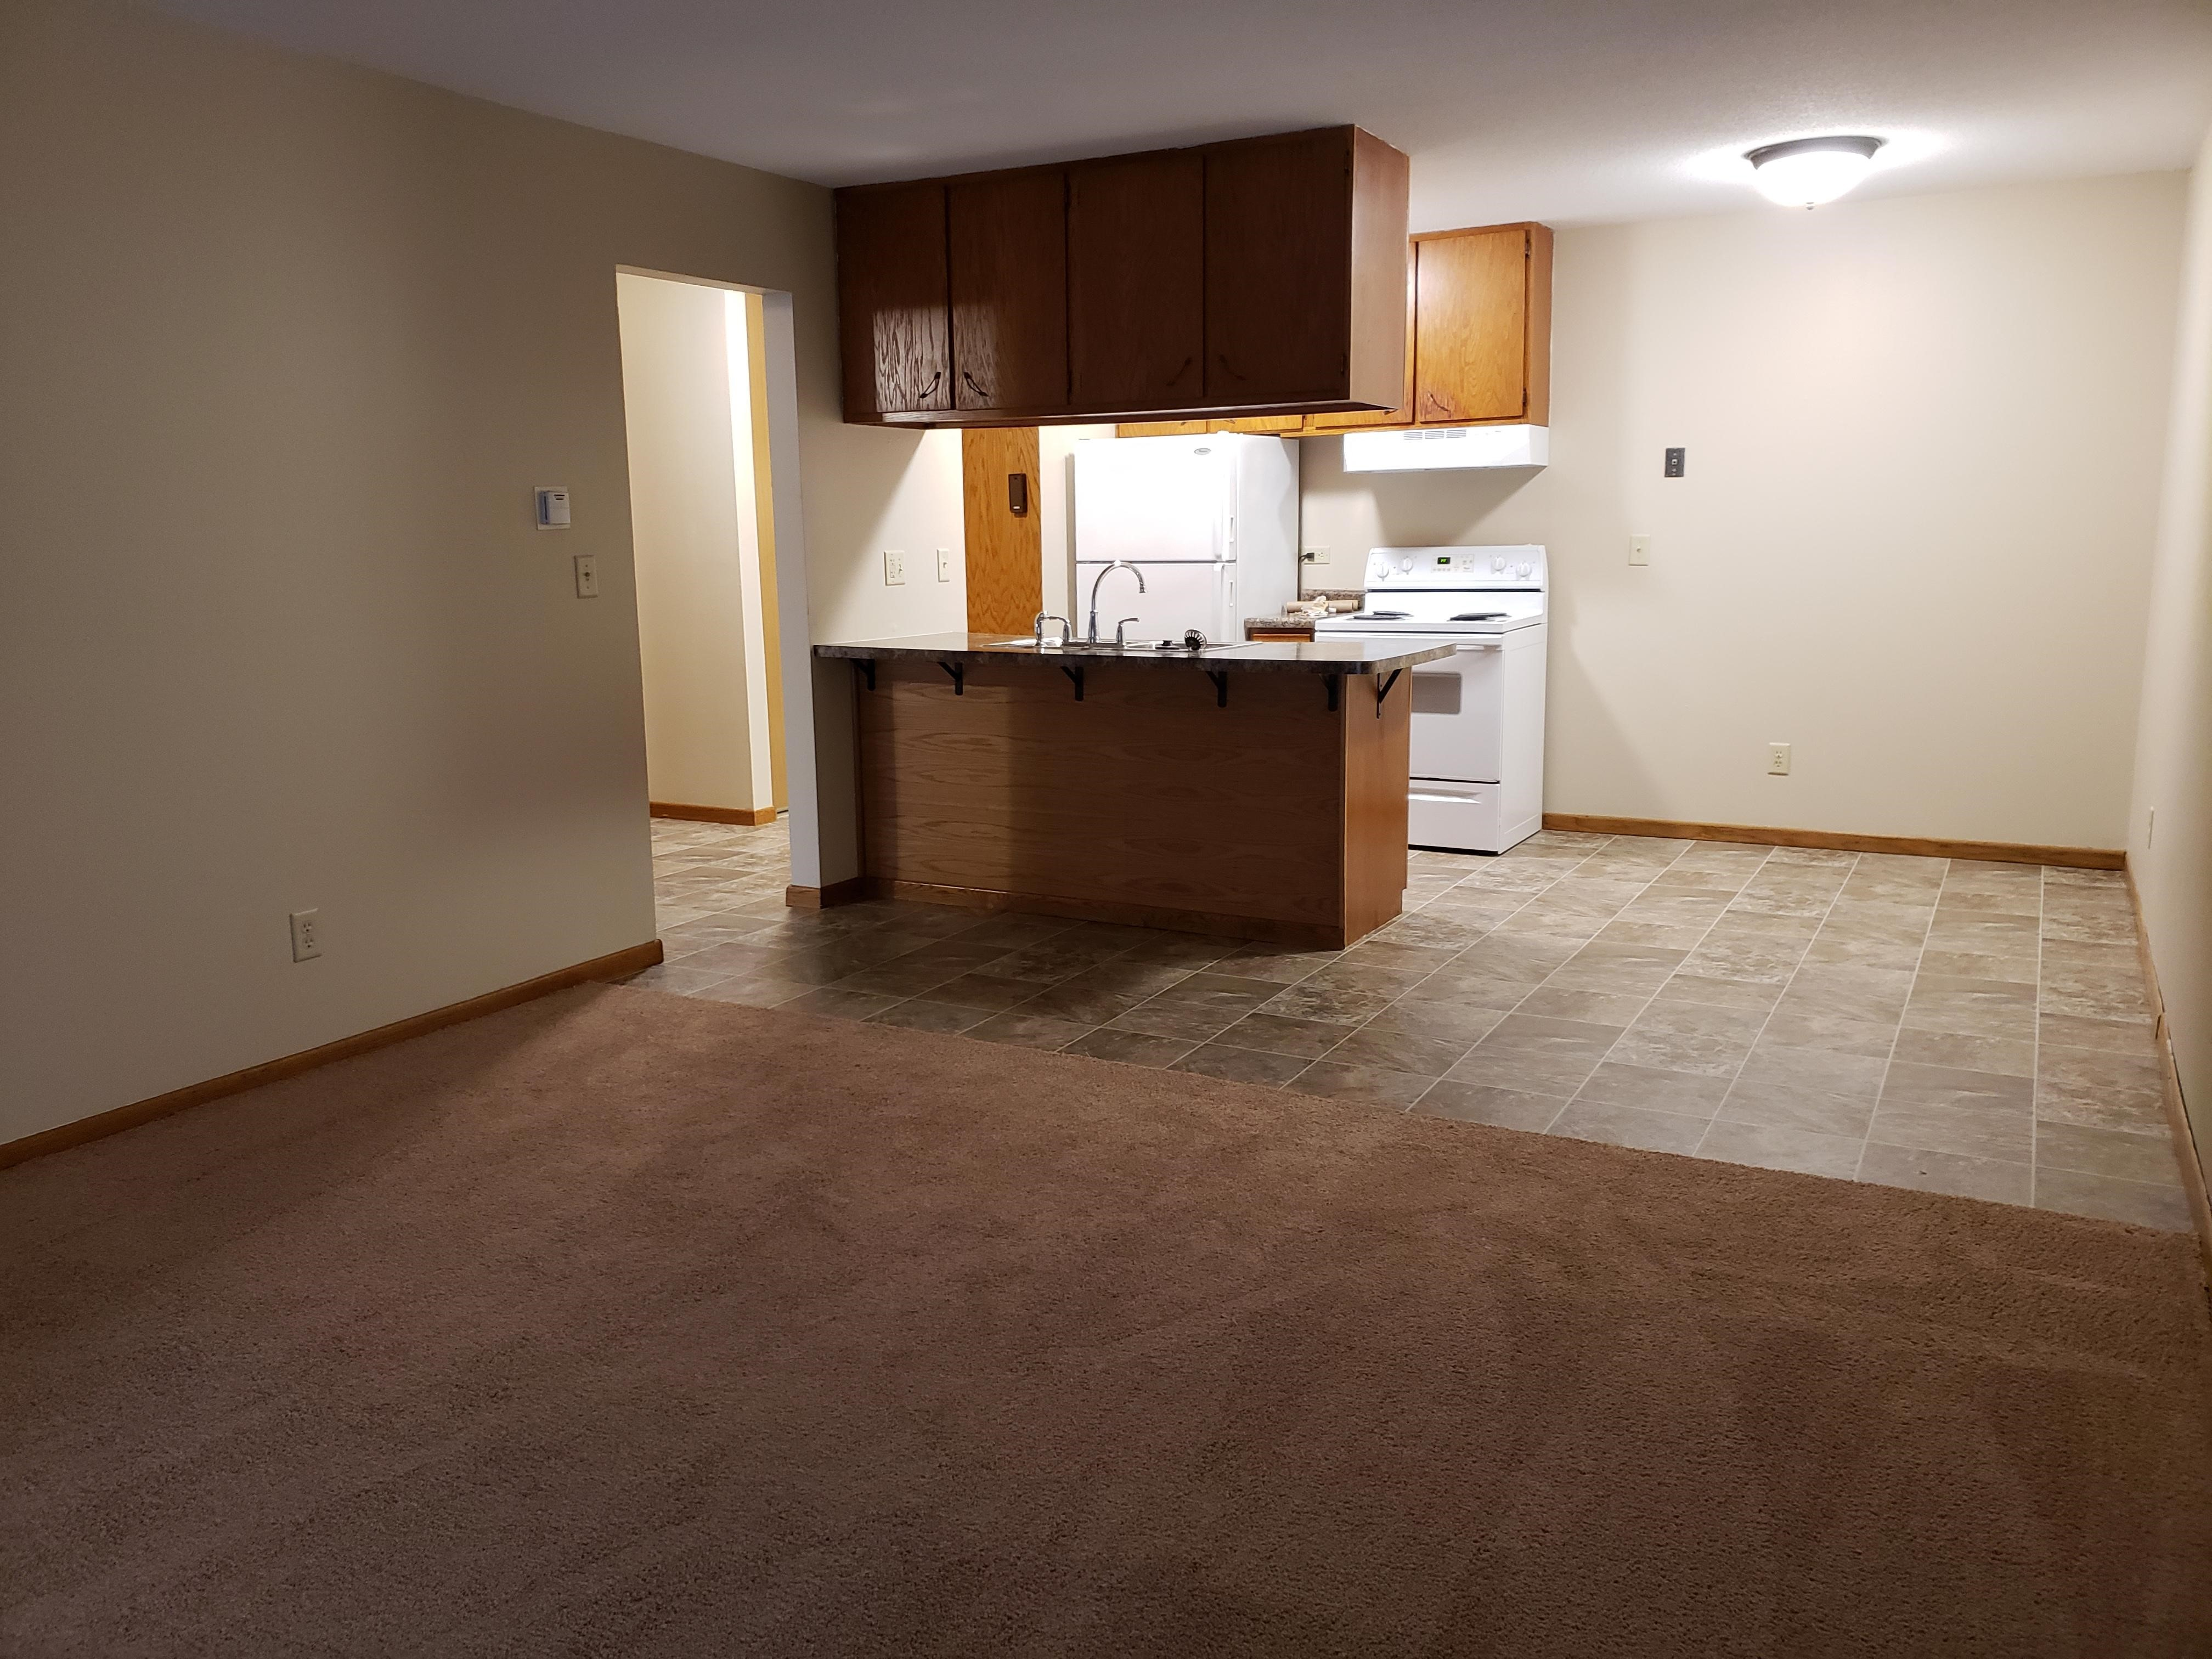 1-Bedroom Kitchen/Dining